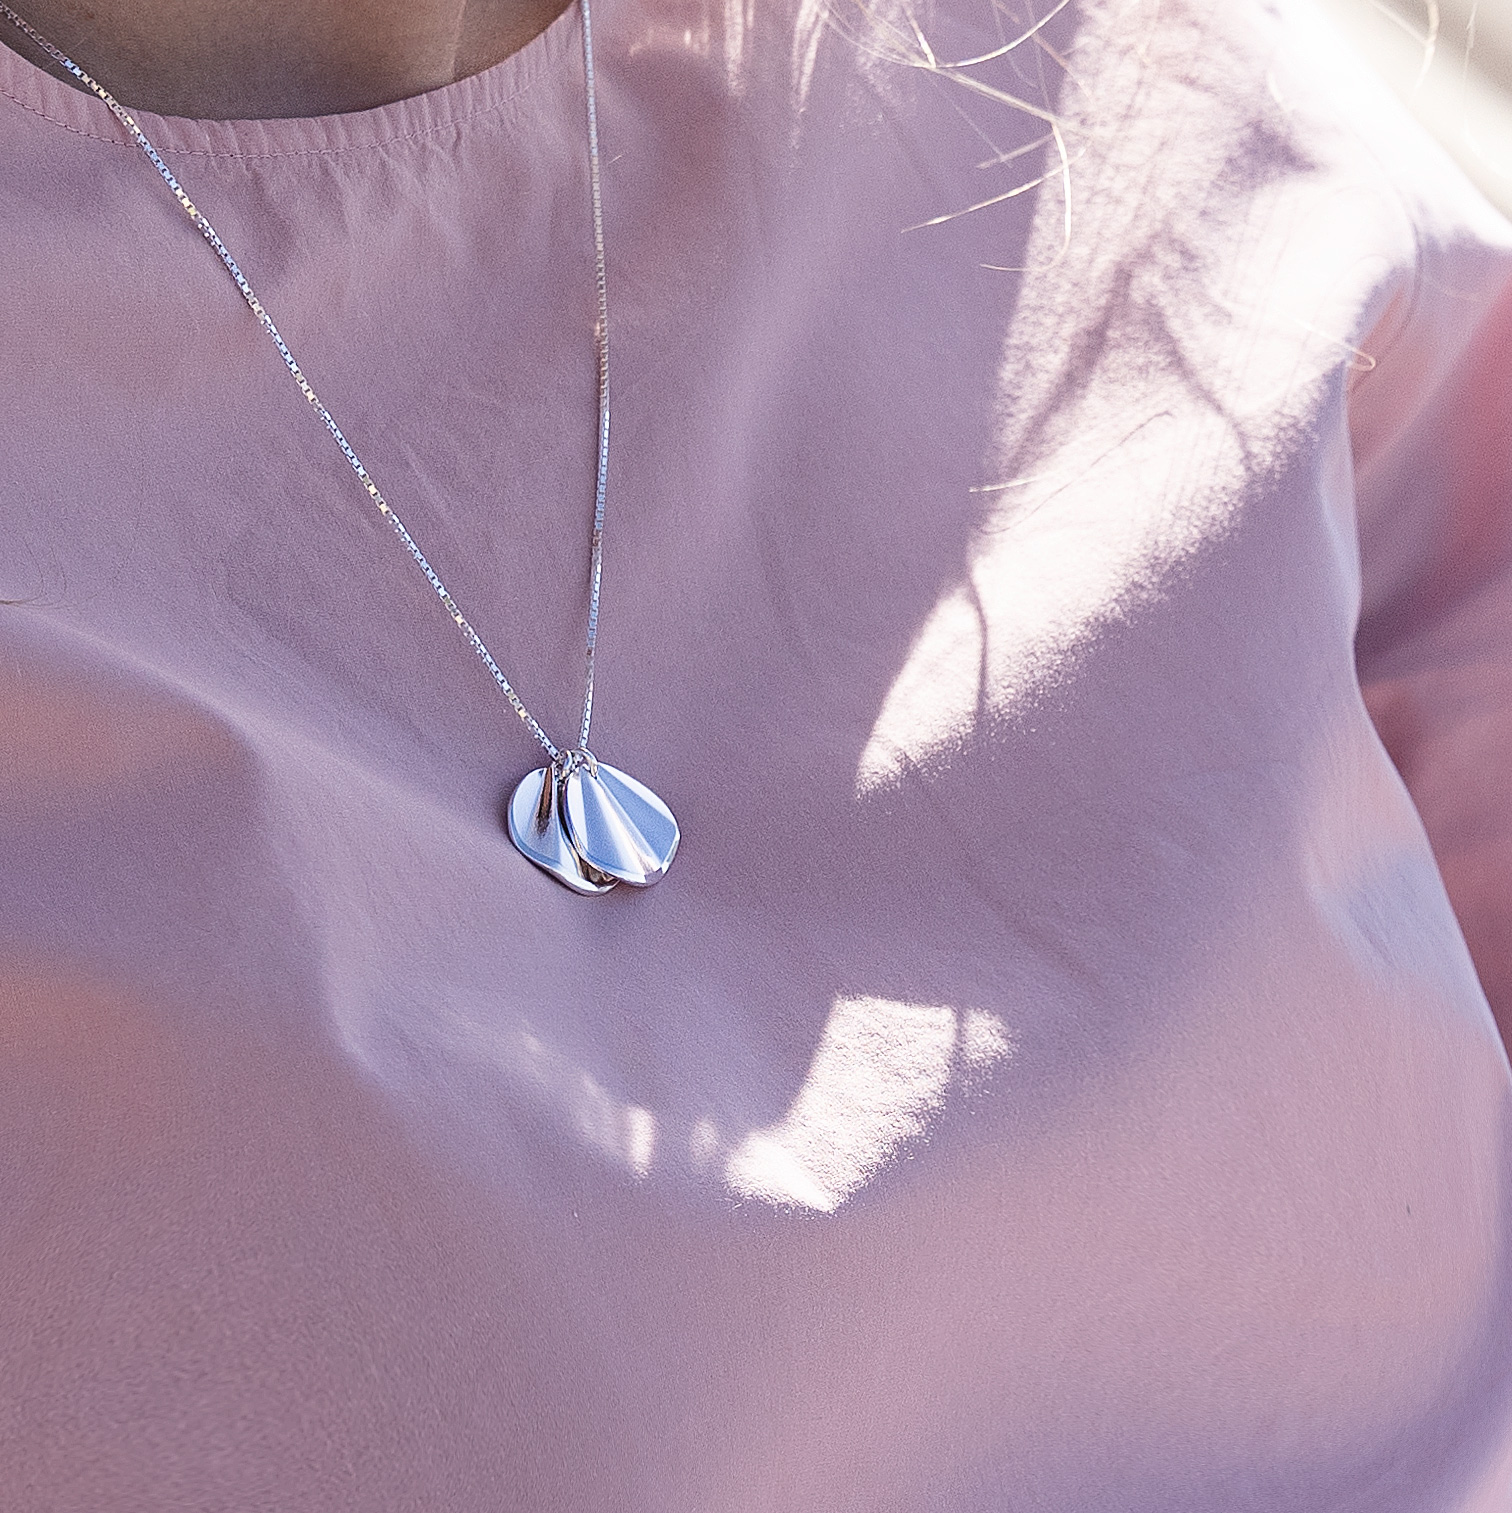 The Moments necklace